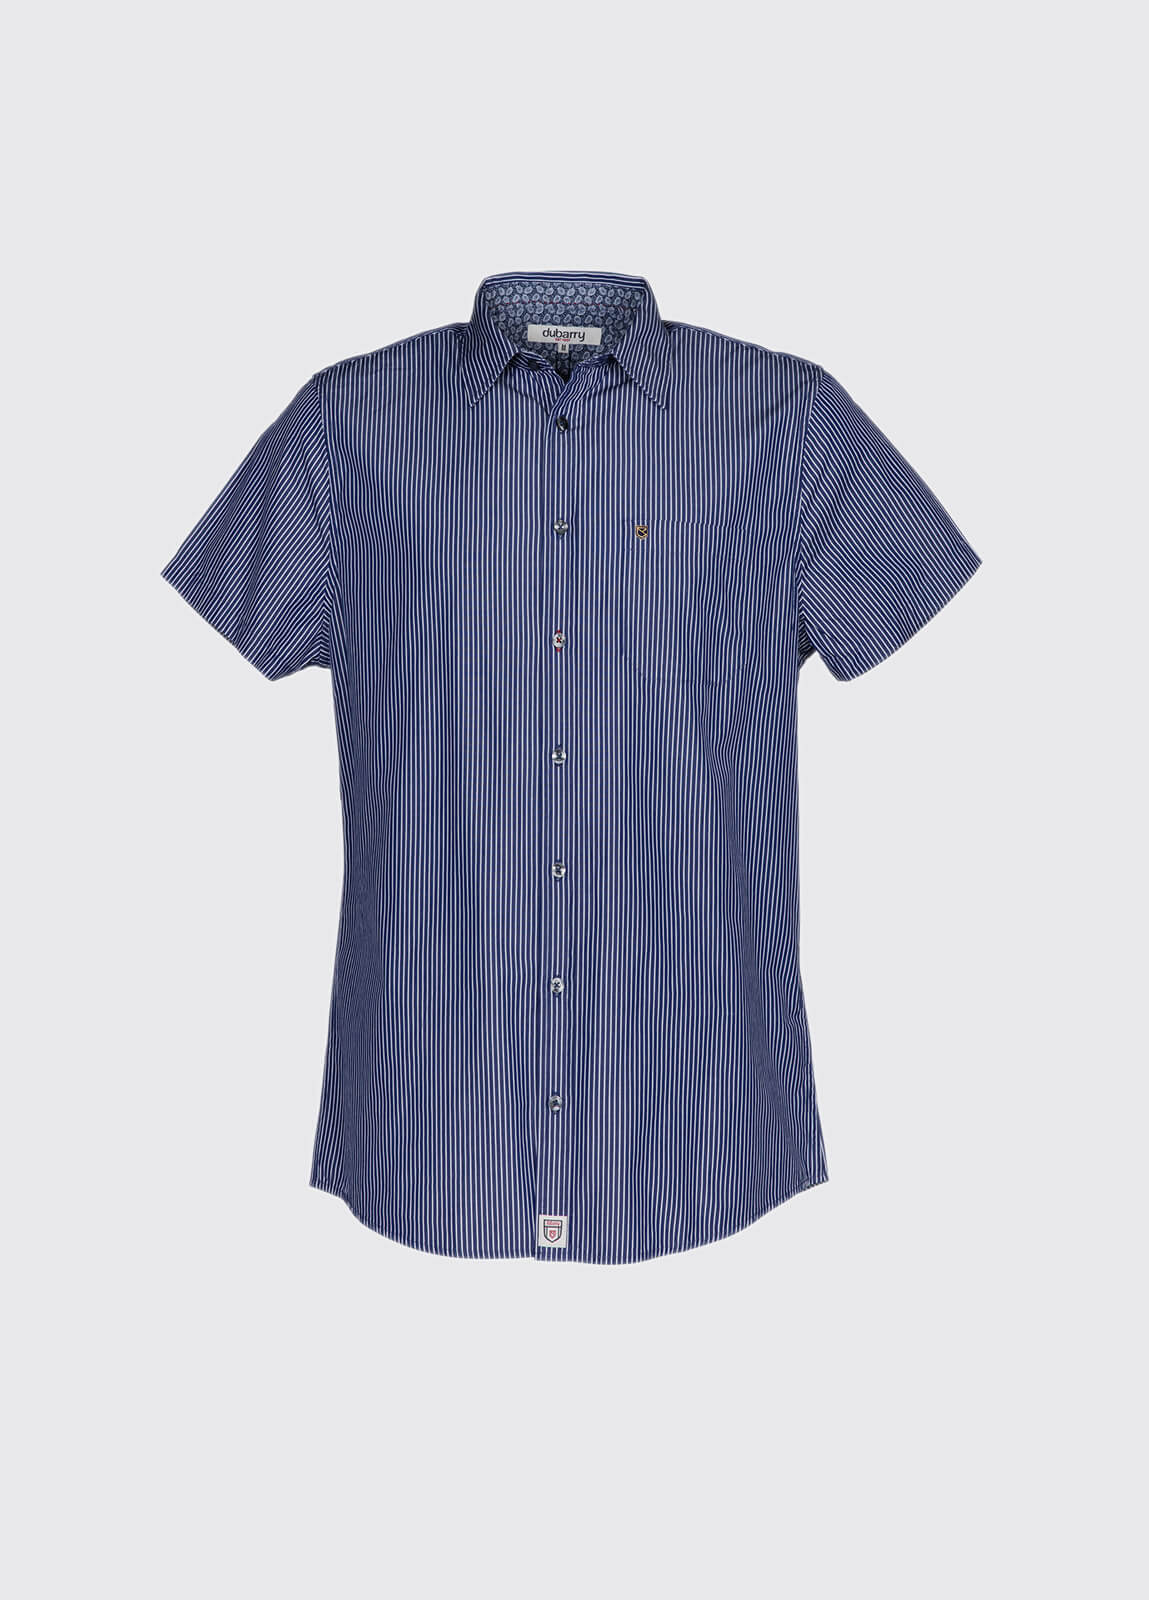 Castlecoote Shirt - Navy